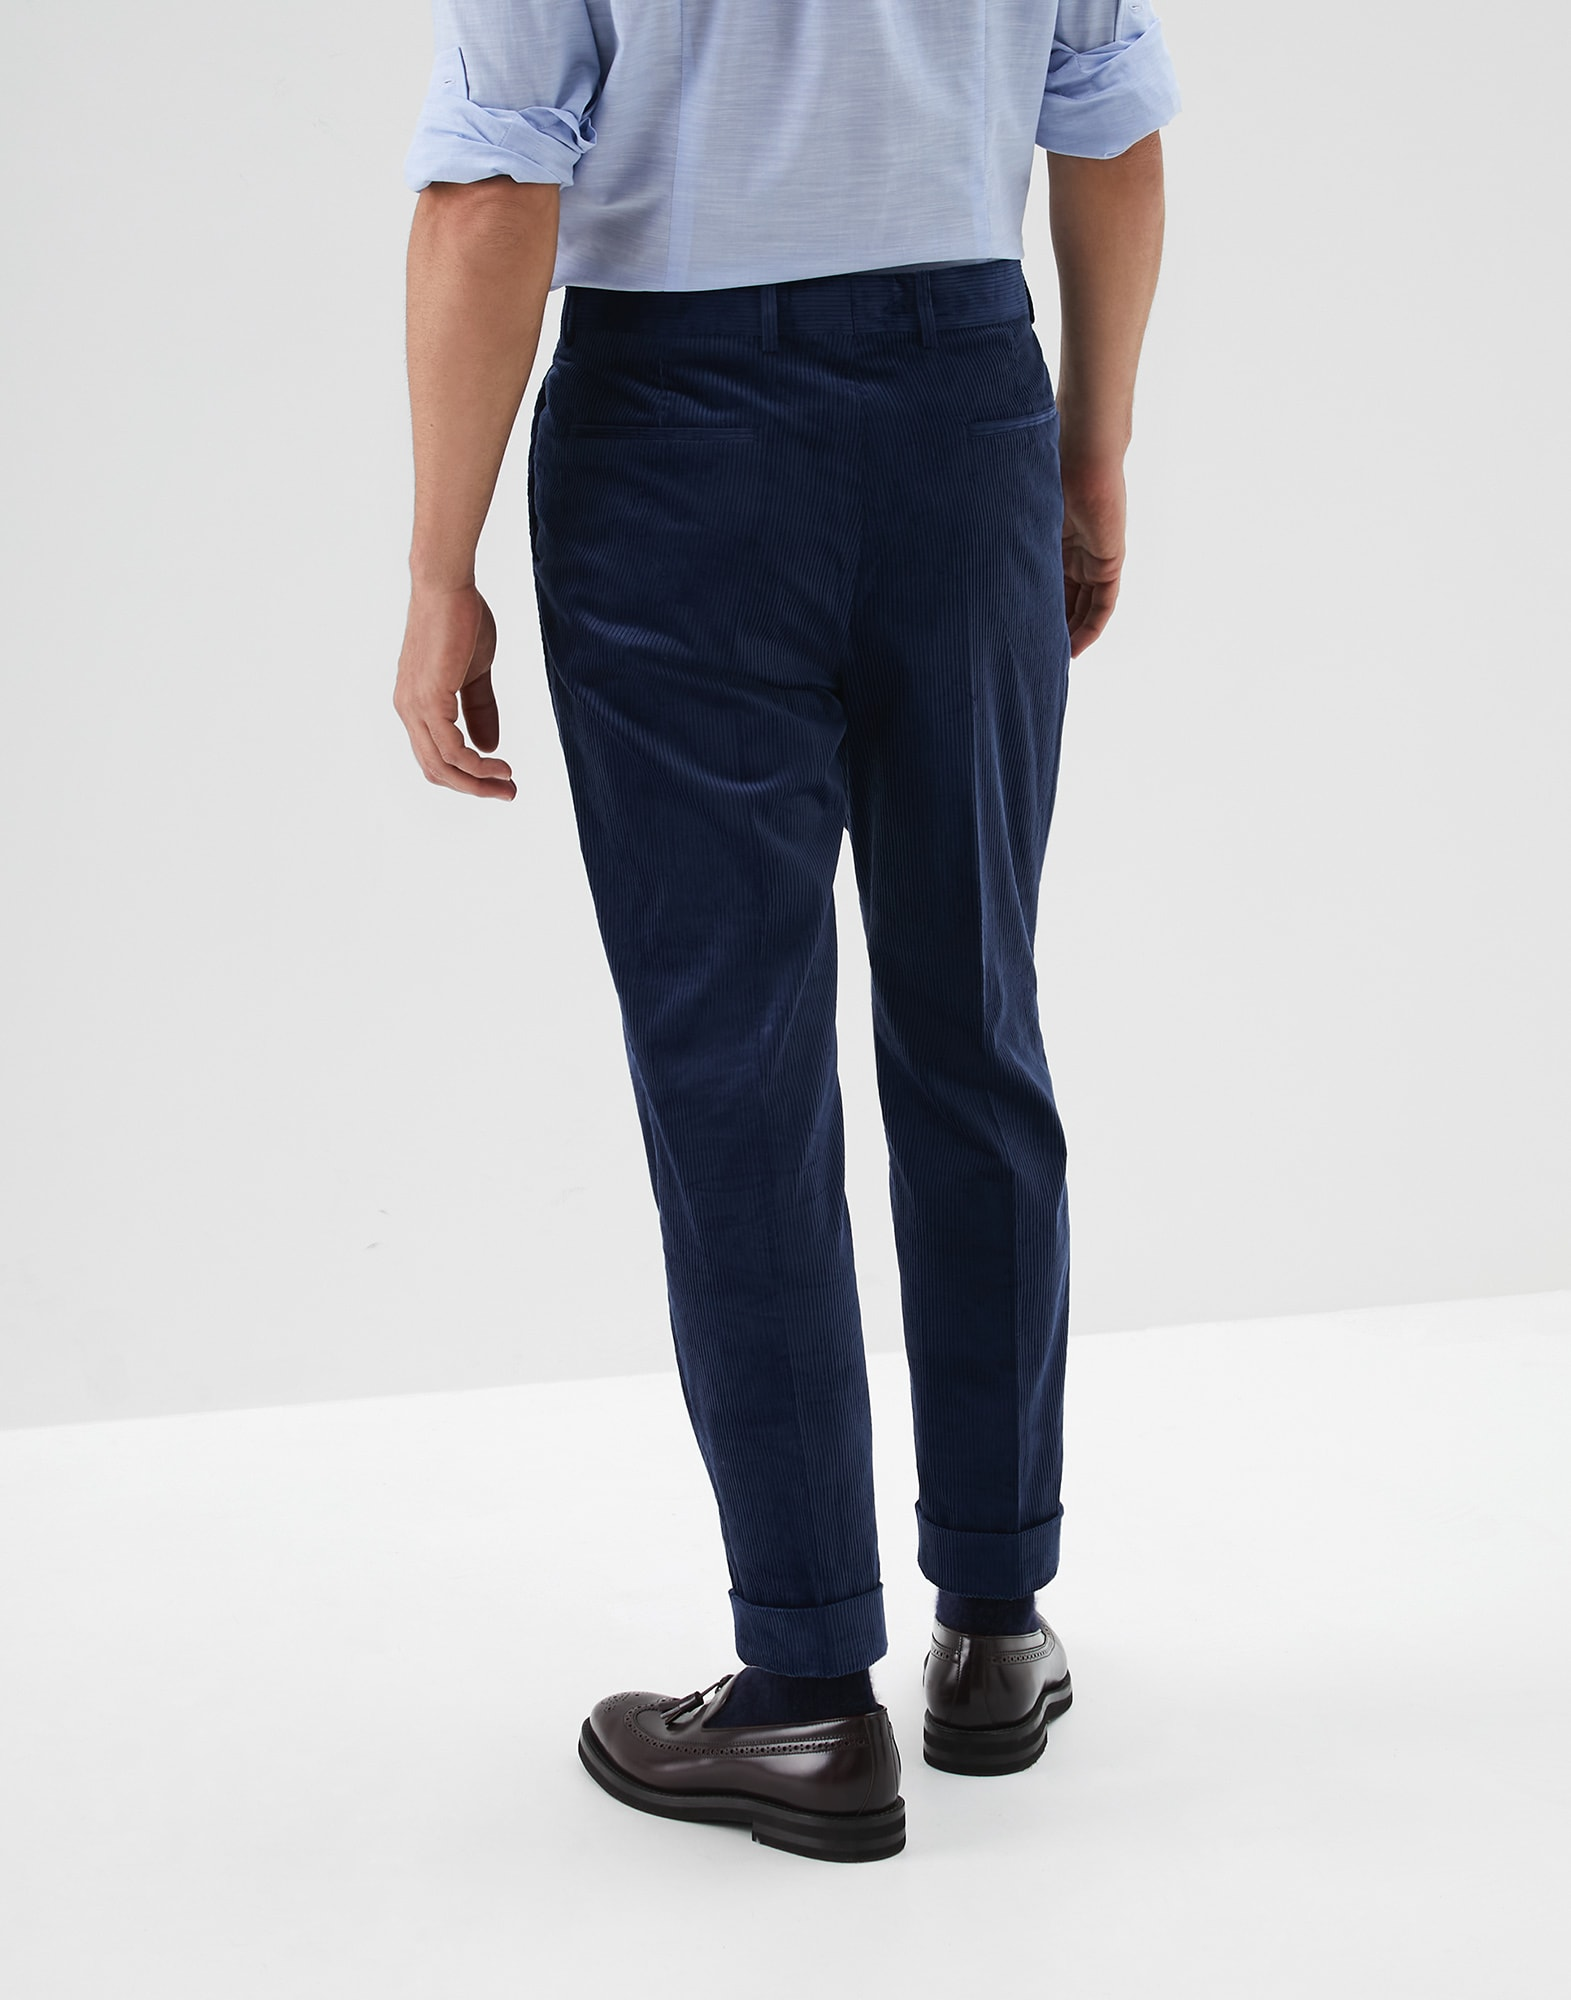 Trousers Blue Ford Man 1 - Brunello Cucinelli